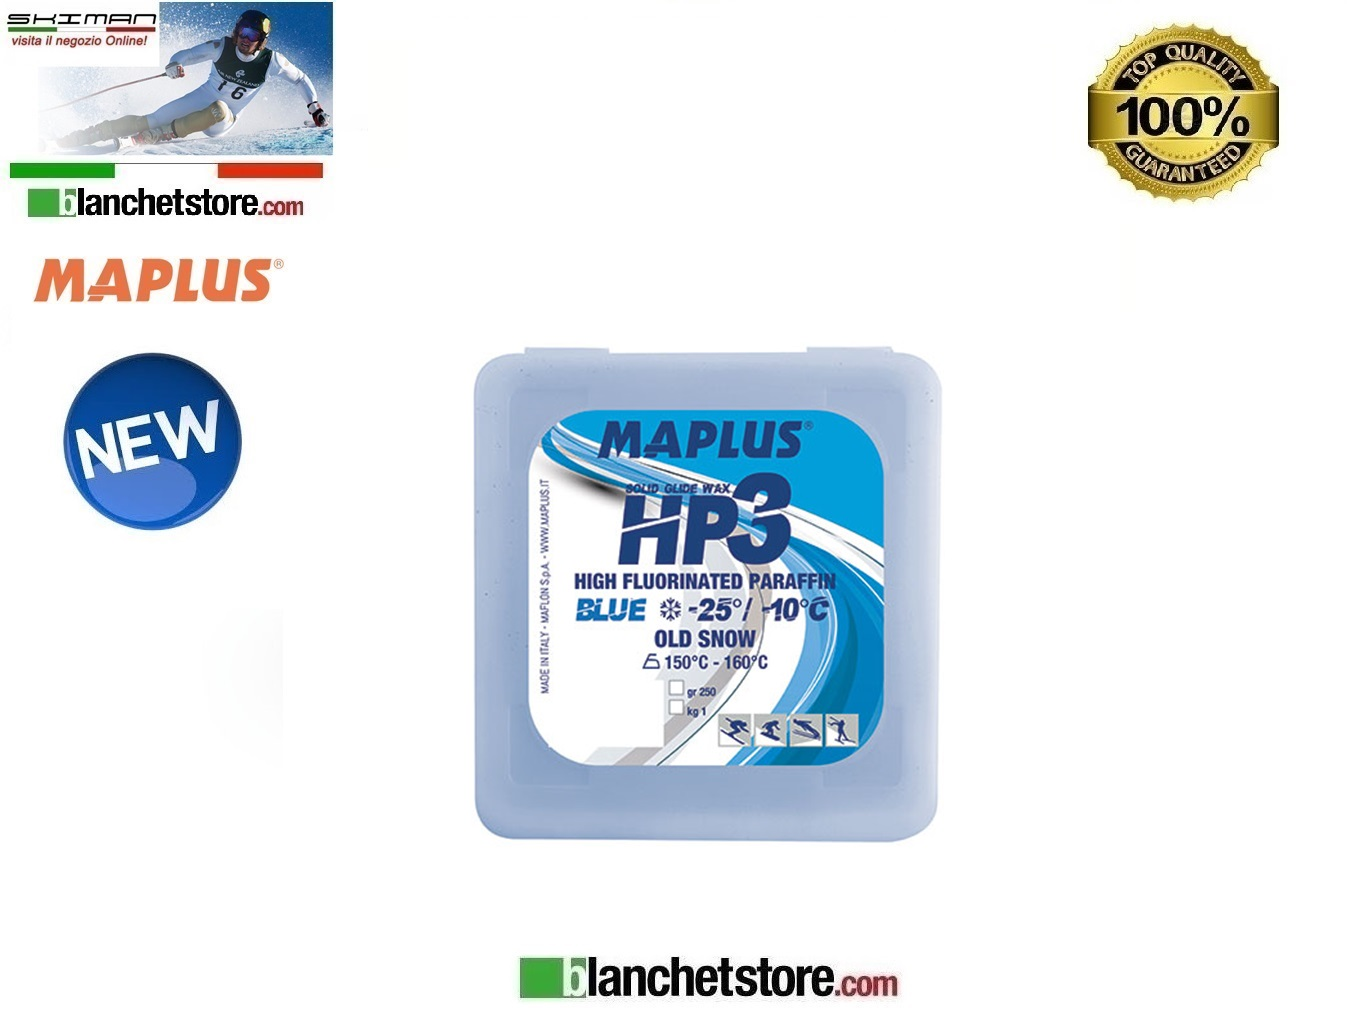 Sciolina MAPLUS HIG FLUO HP 3 Conf 250 gr BLUE NEW